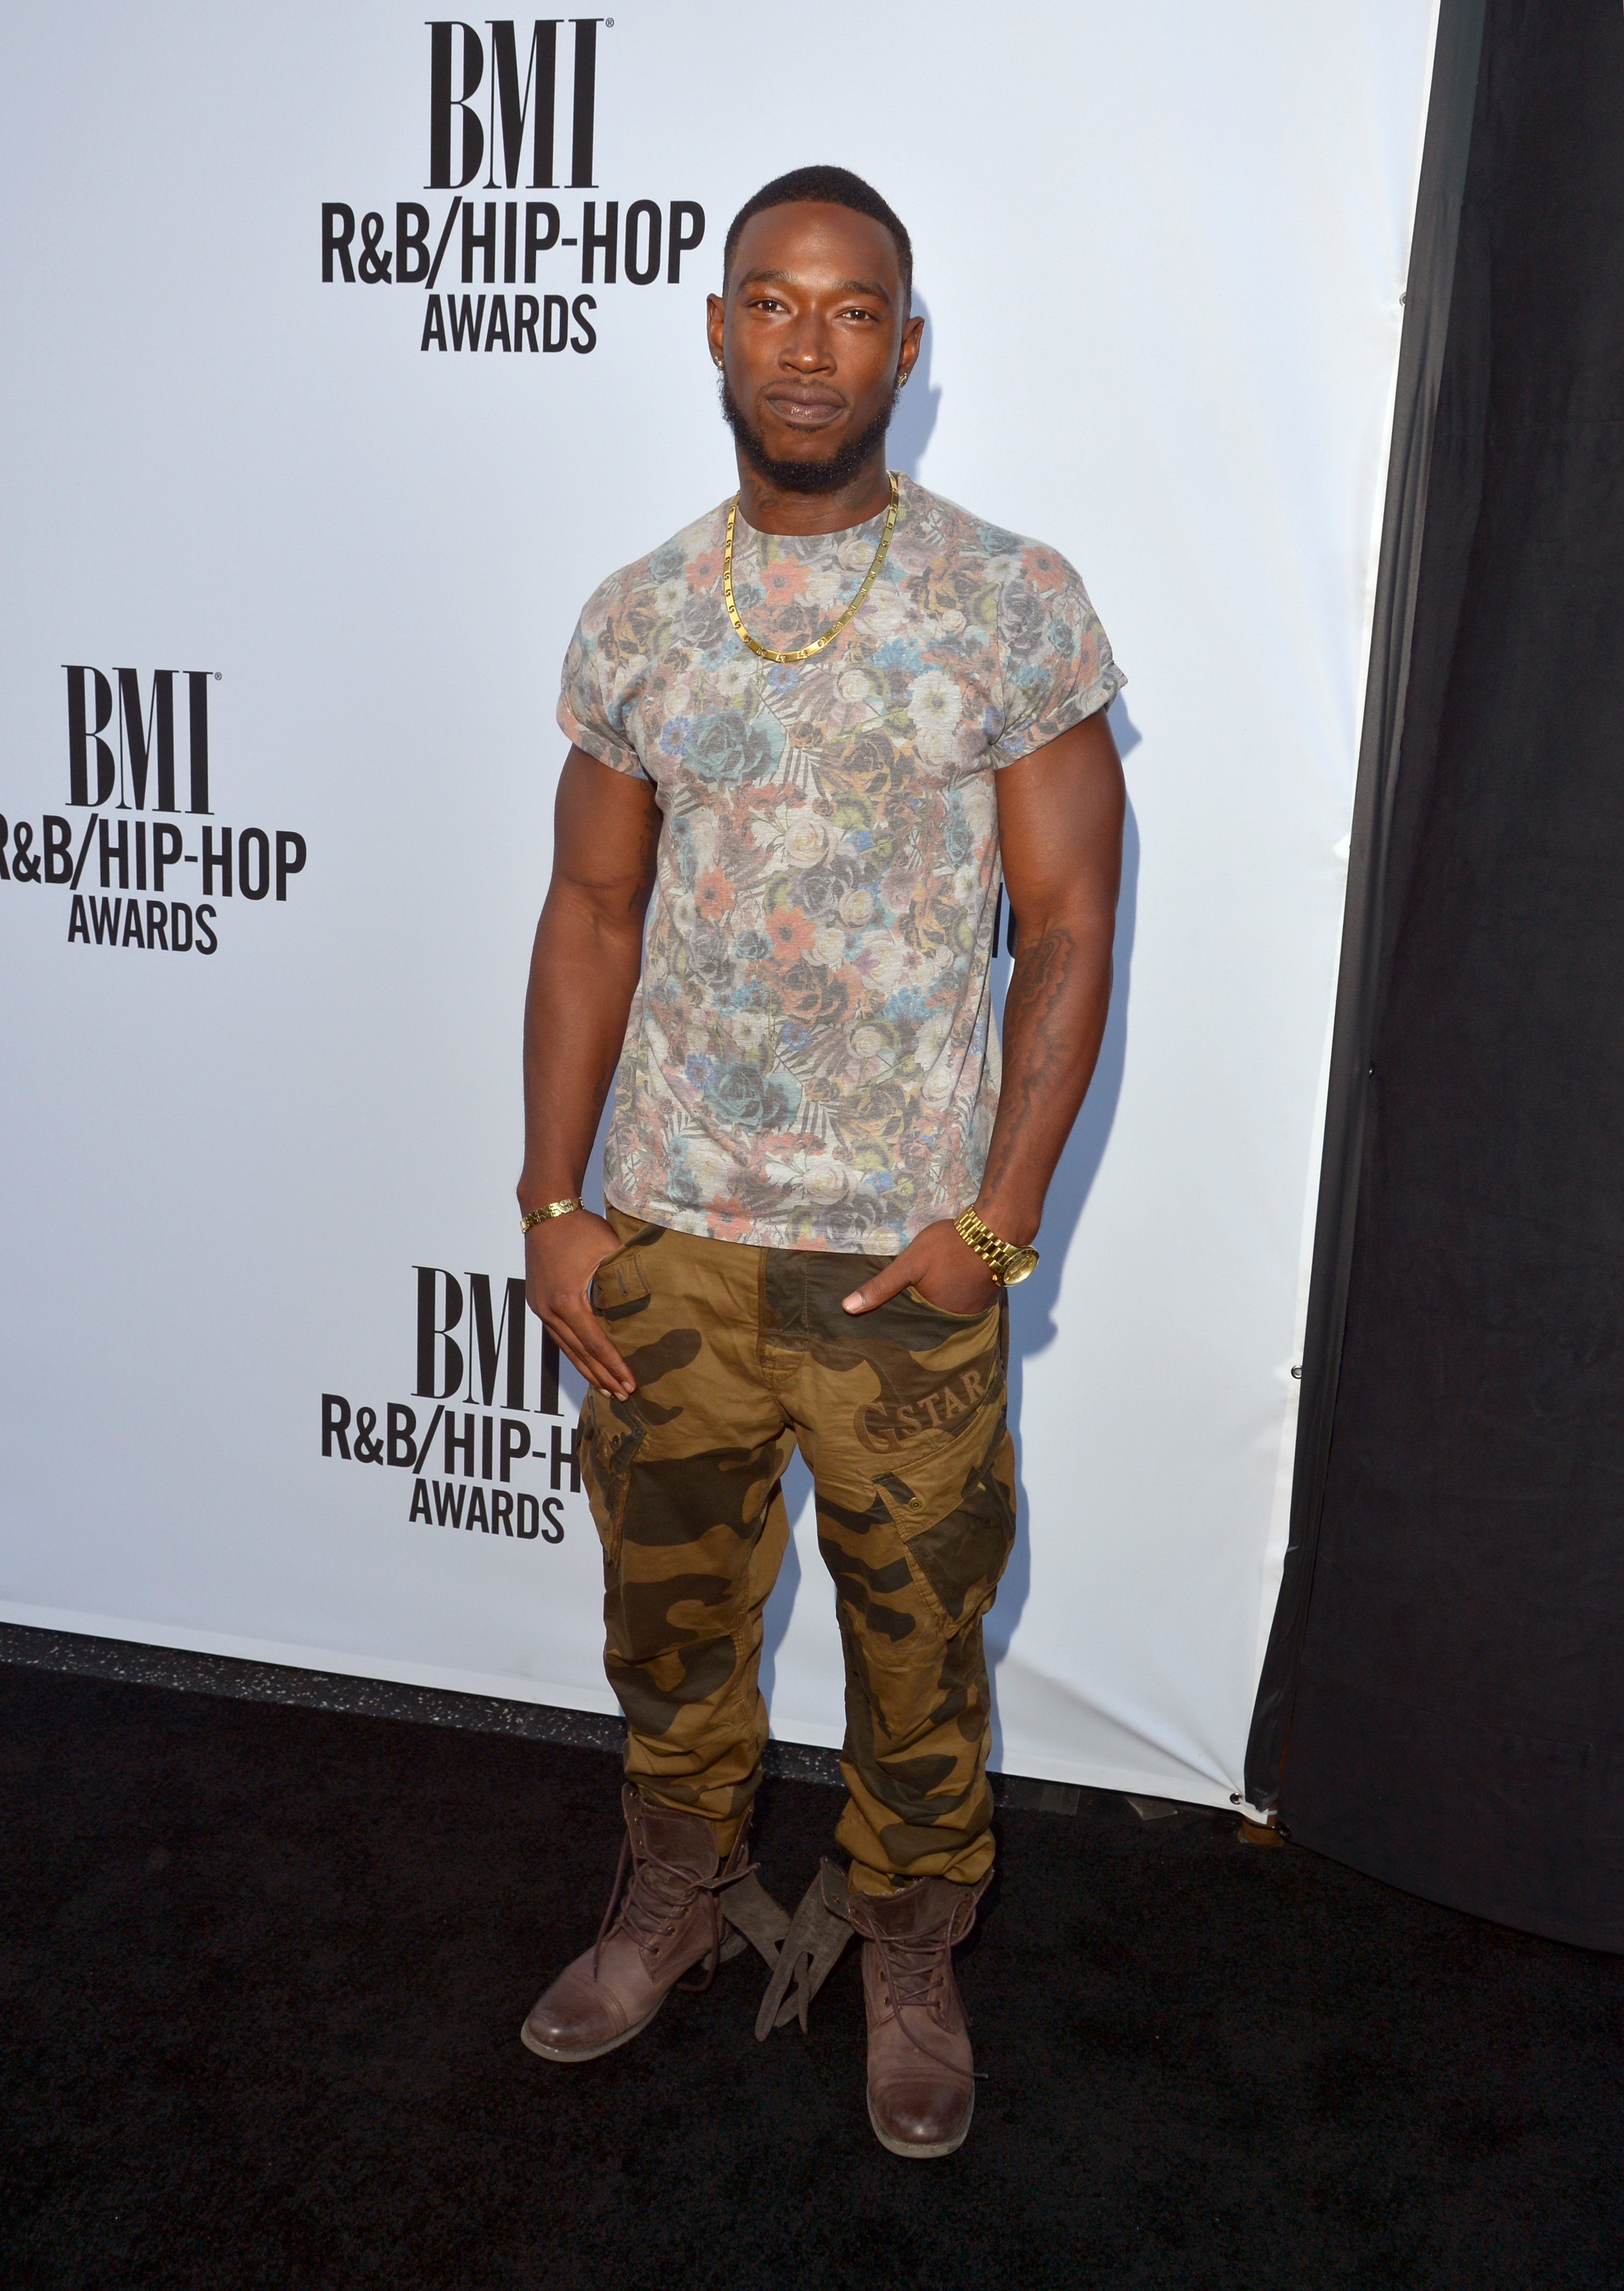 Kevin McCall at the 2014 BMI R&B/Hip-Hop Awards in Hollywood. | Photo: Getty Images